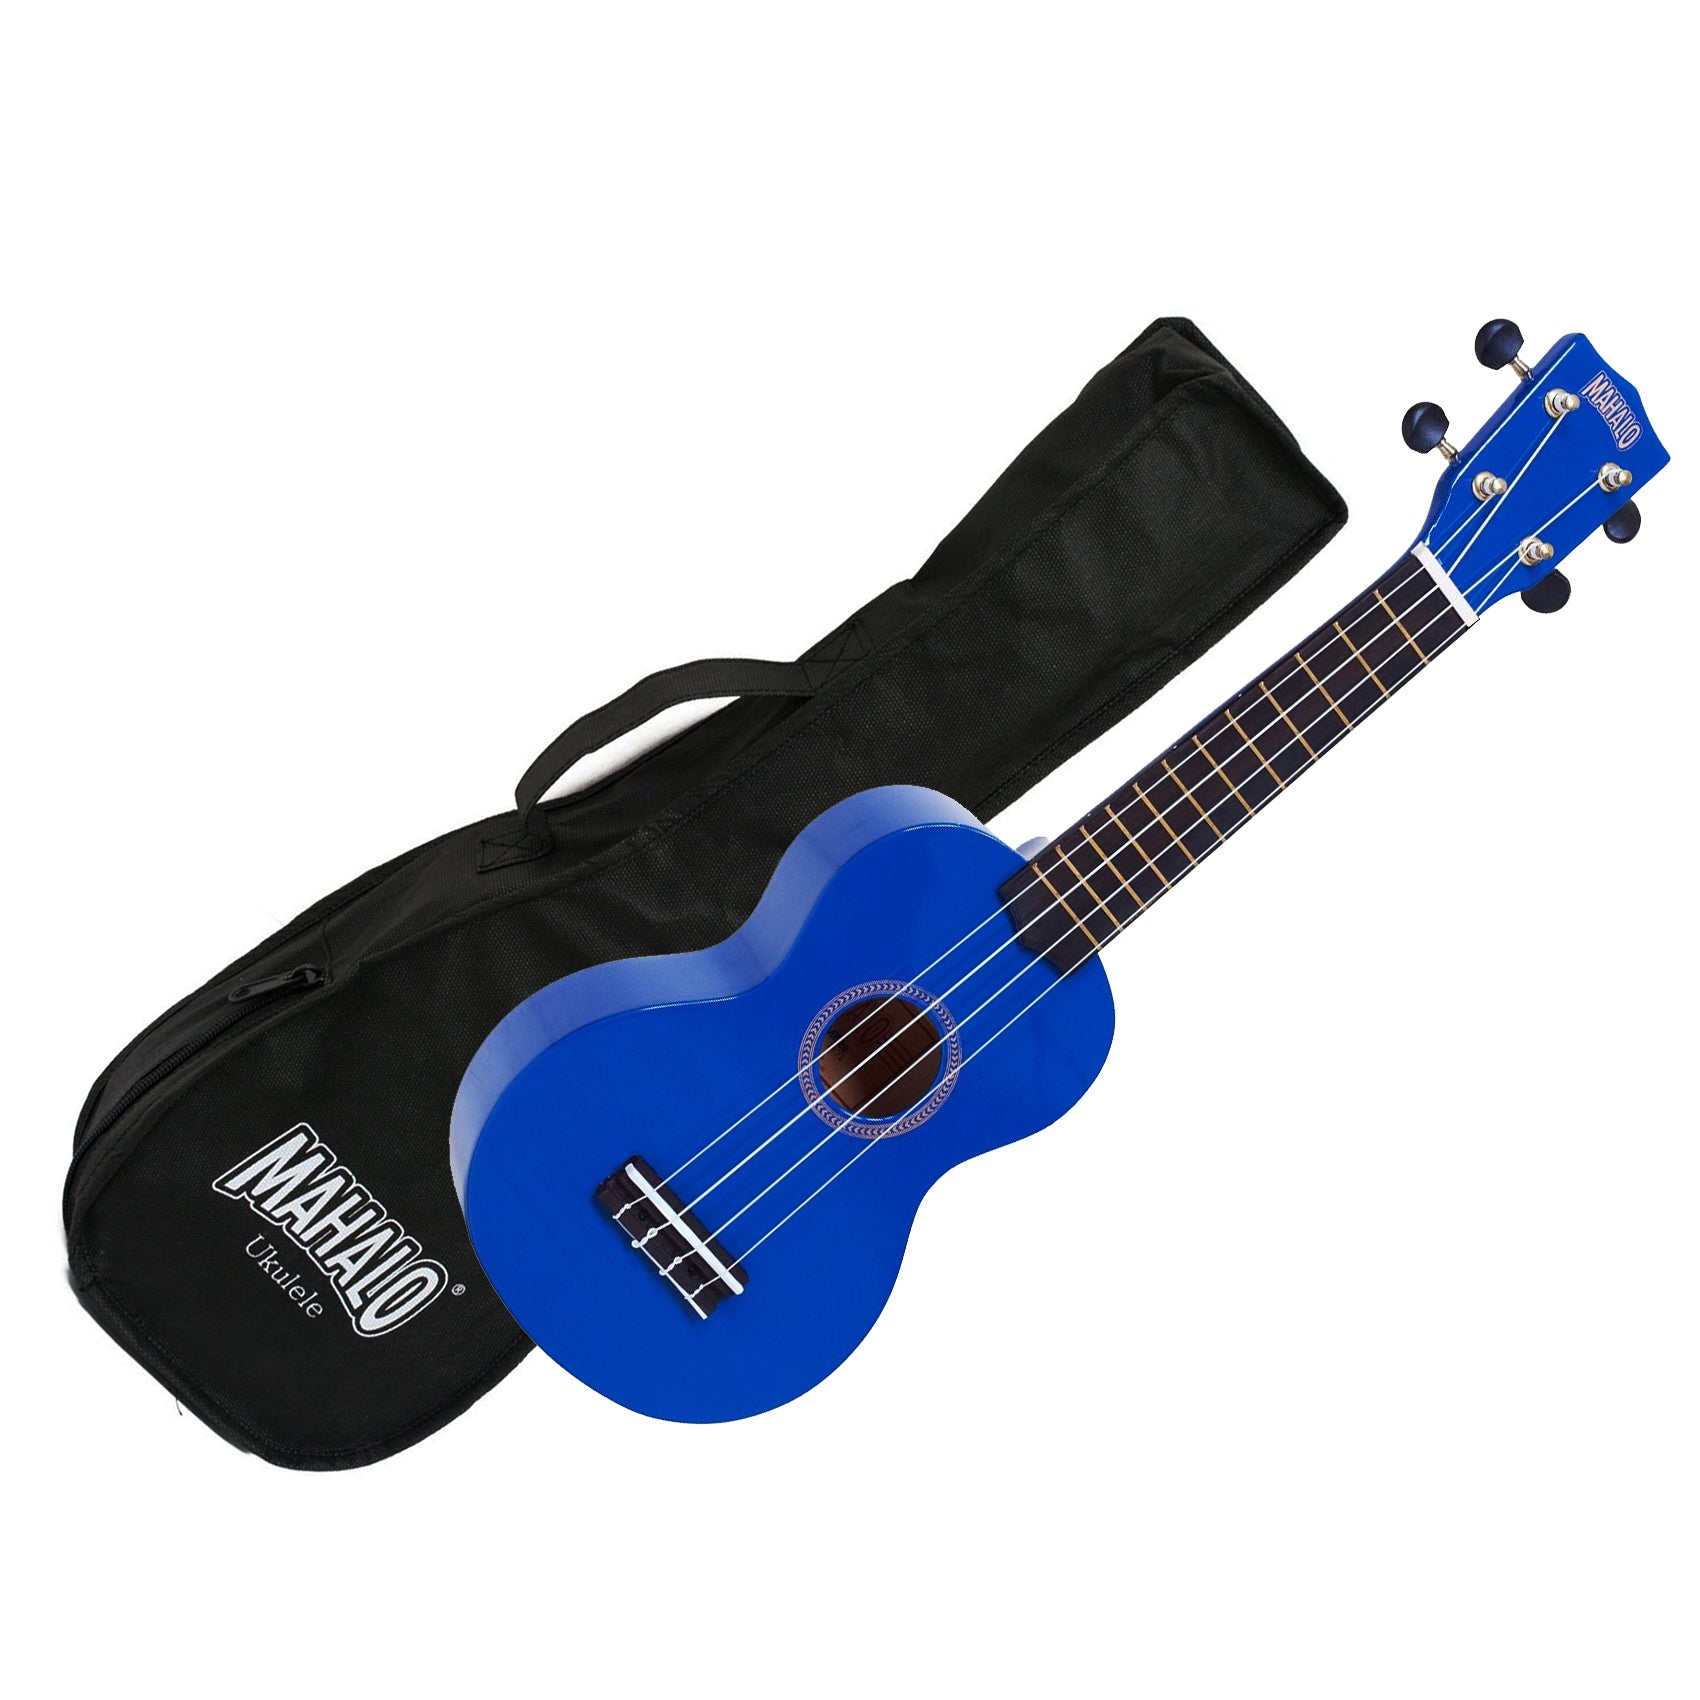 Mahalo MR1-BU Soprano Ukulele w/ Bag - Blue